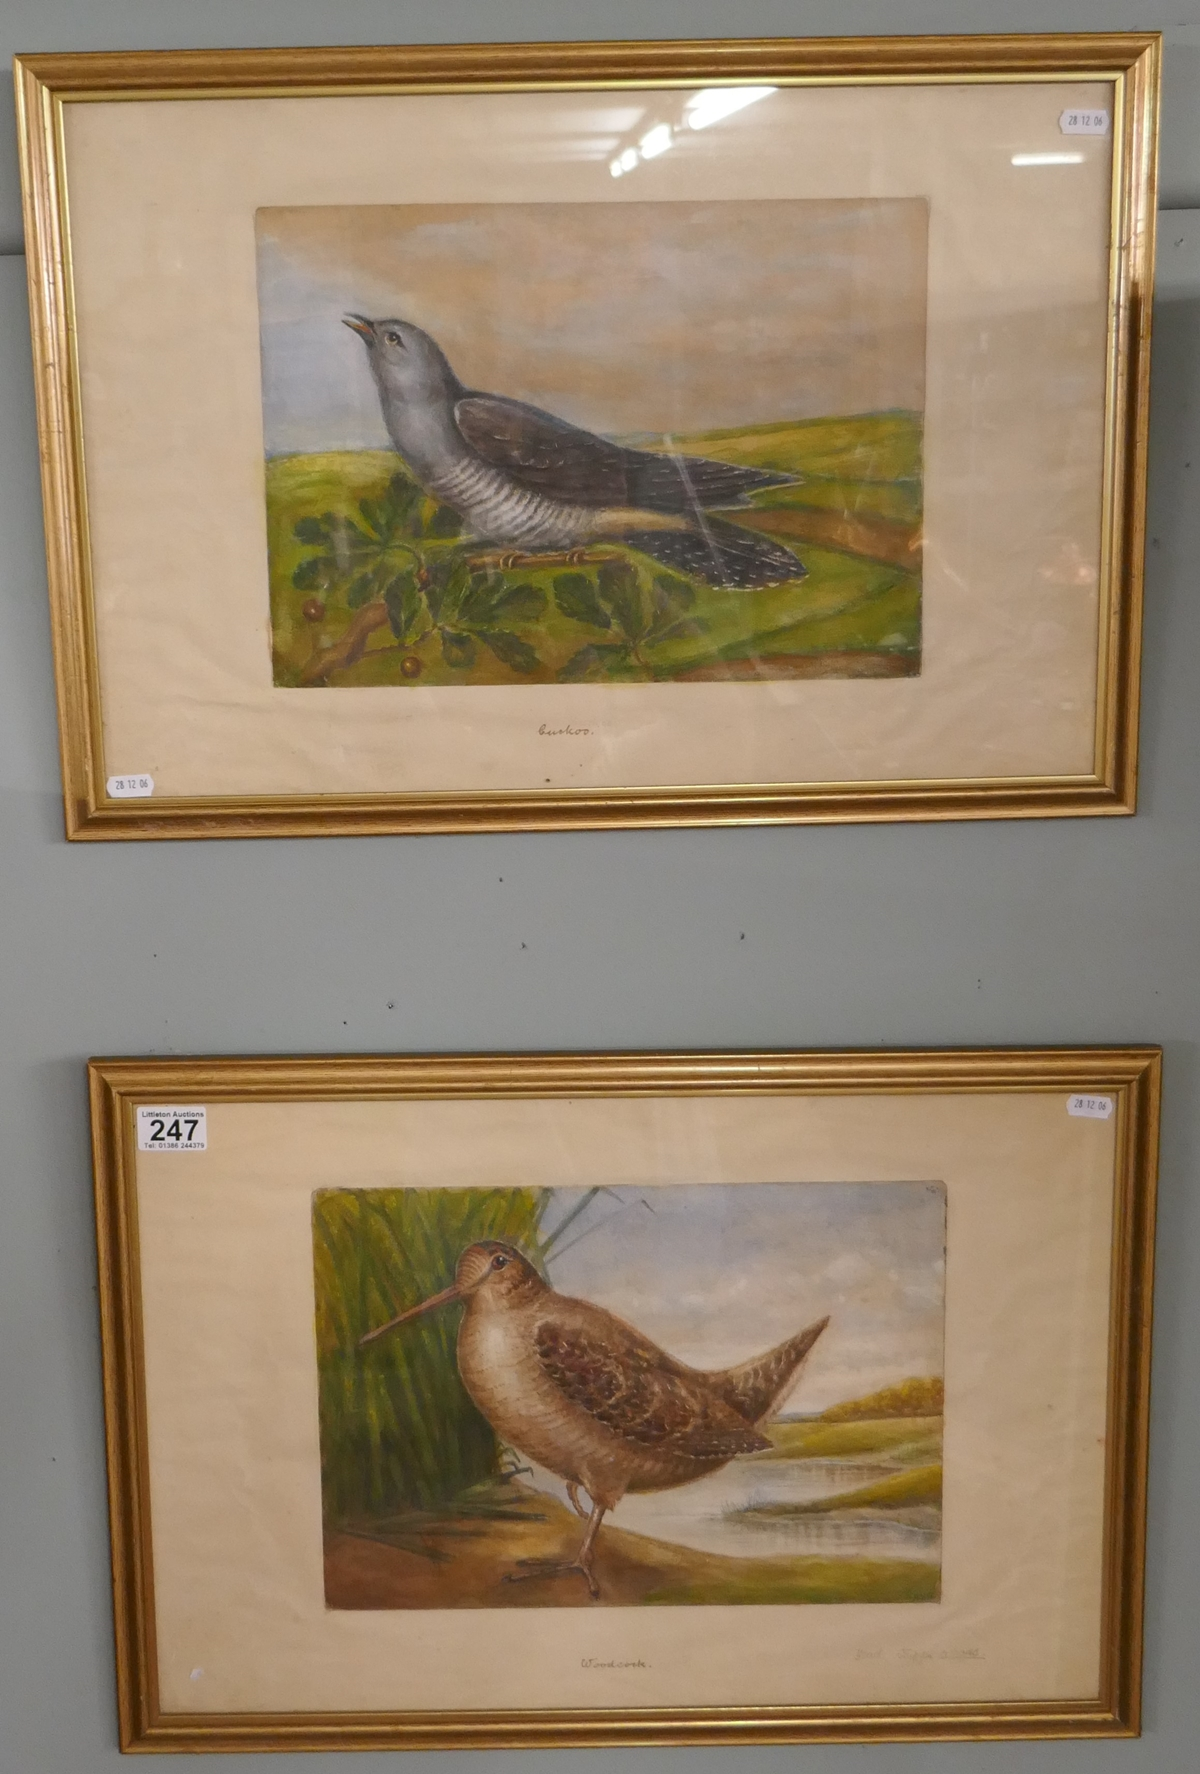 Pair of watercolours signed AVG - Cuckoo & Woodcock